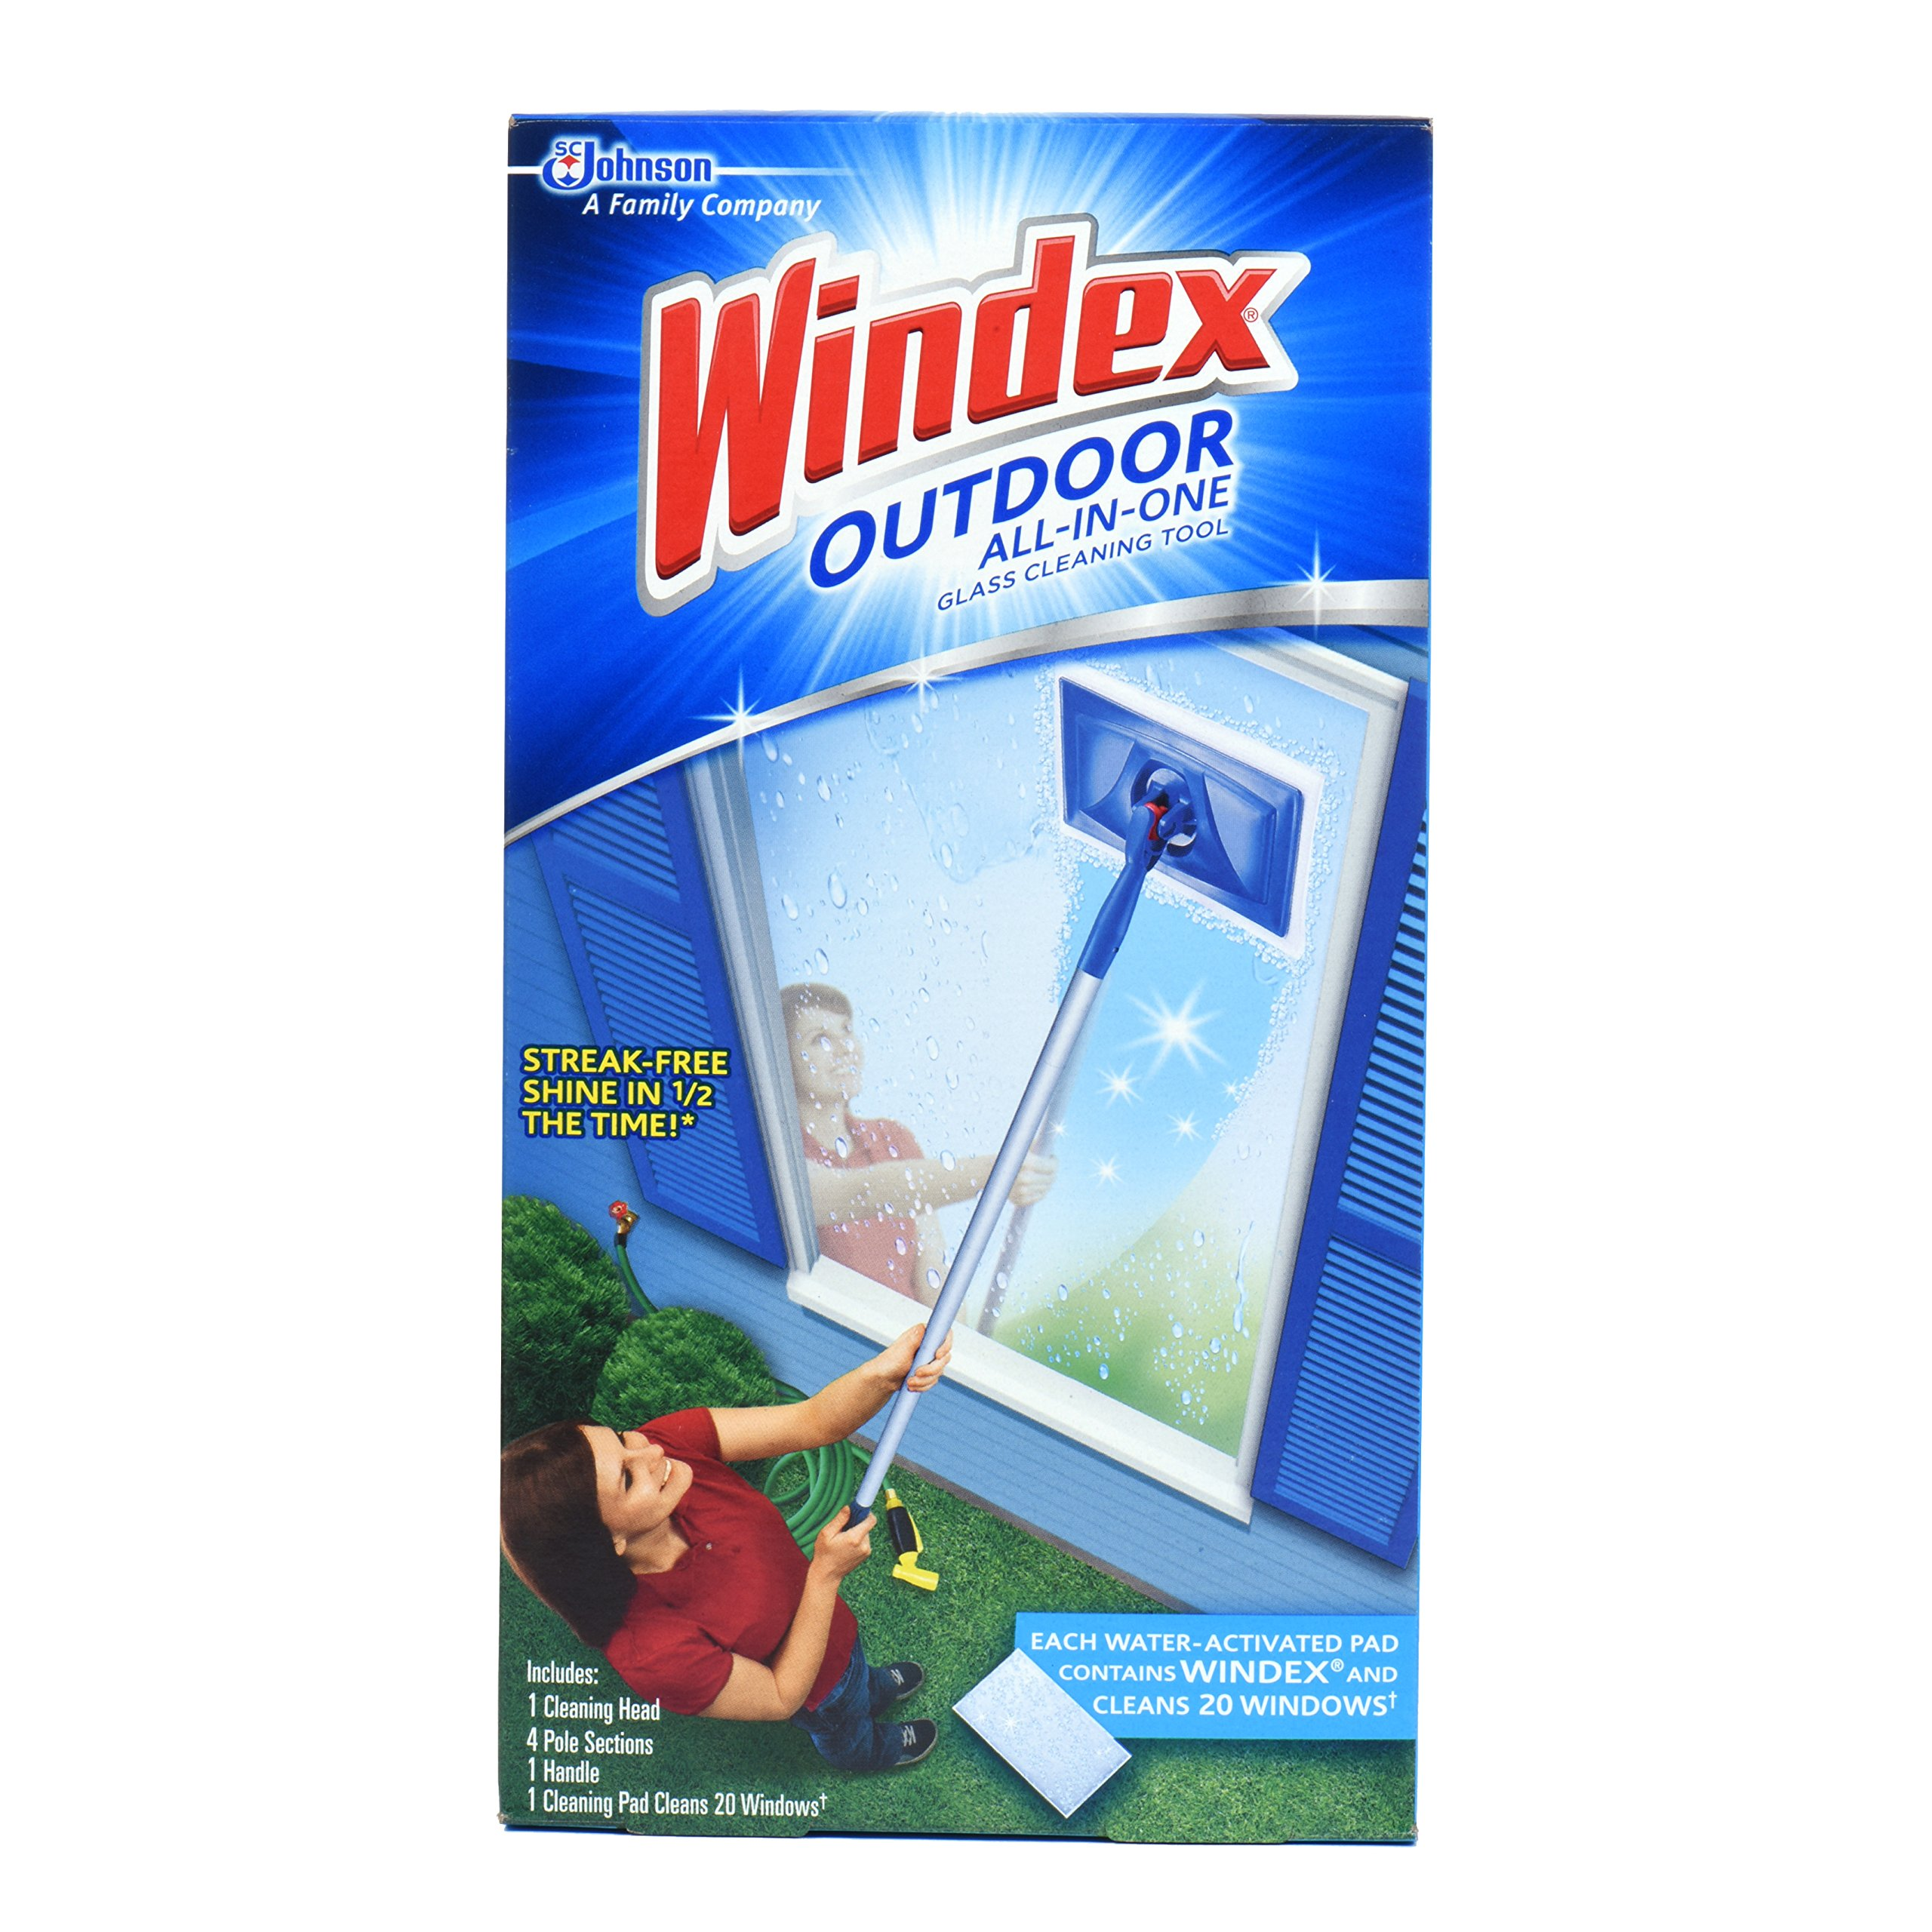 Windex Outdoor All In One Glass Cleaner Tool Starter Kit With Pad FREE USA SHIP